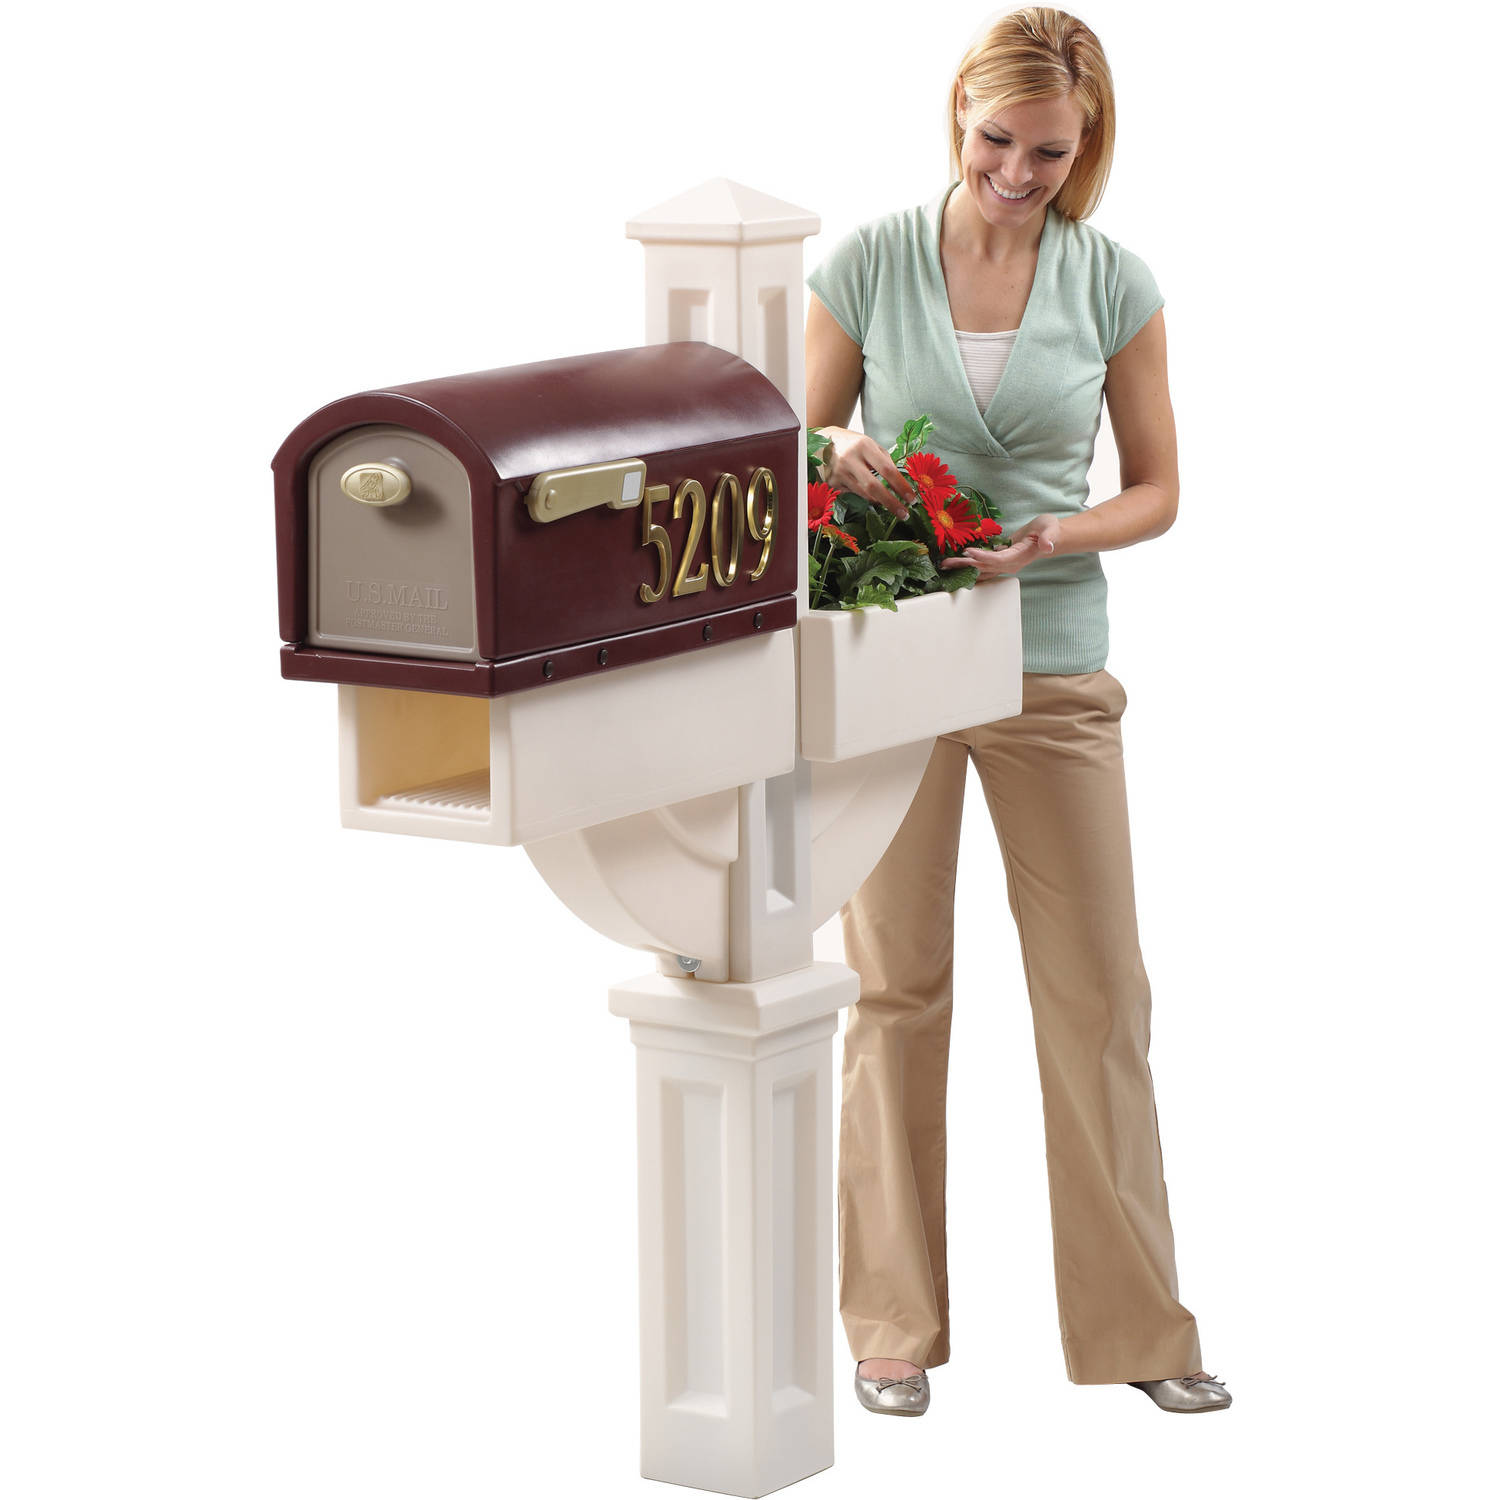 Hudson Mailbox with Planter by Generic